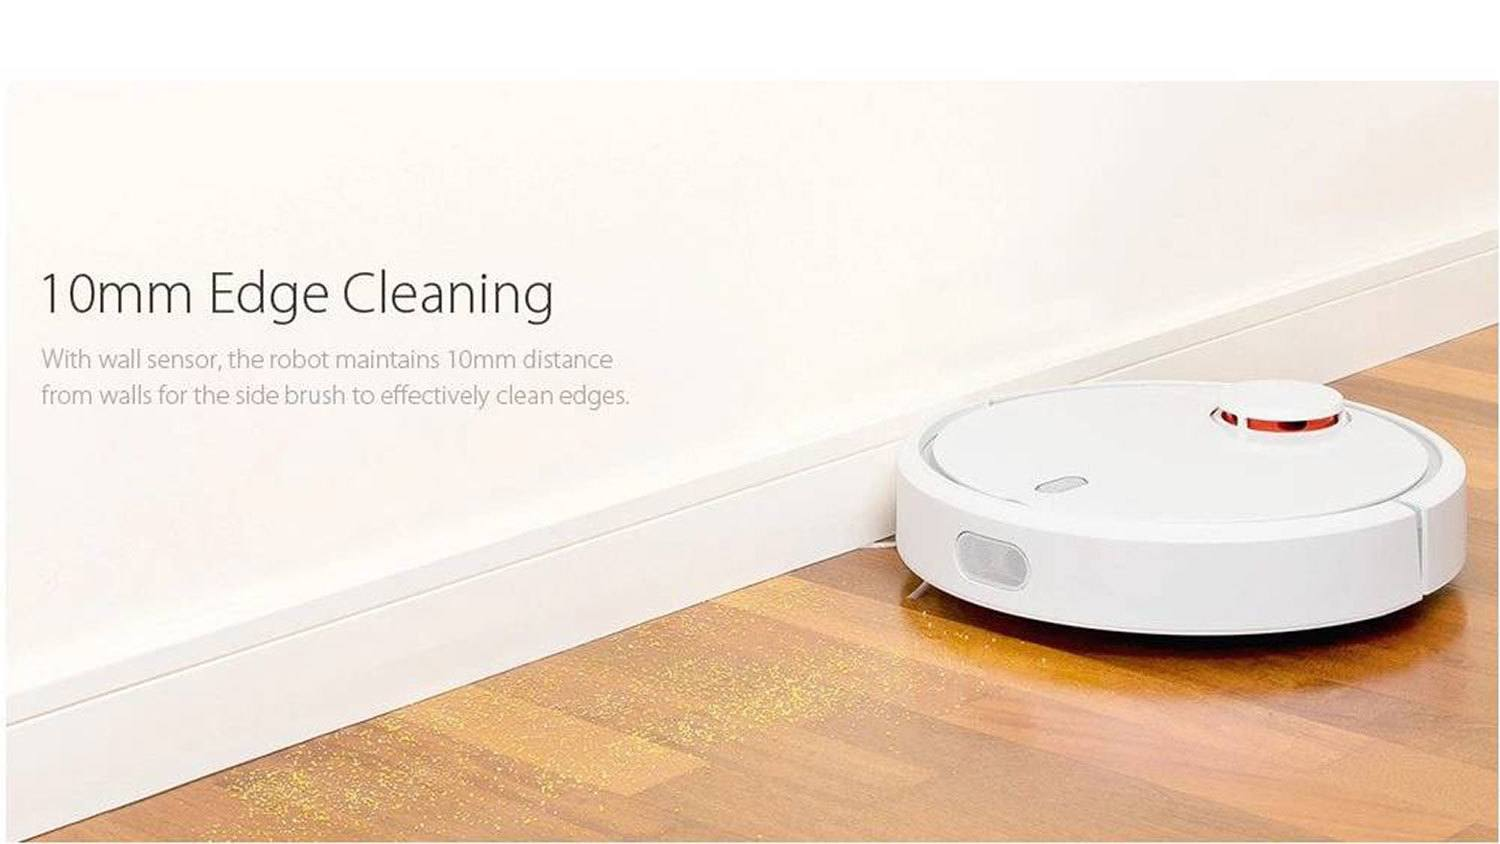 xiaomi mi robot vacuum wall sensor edge cleaning